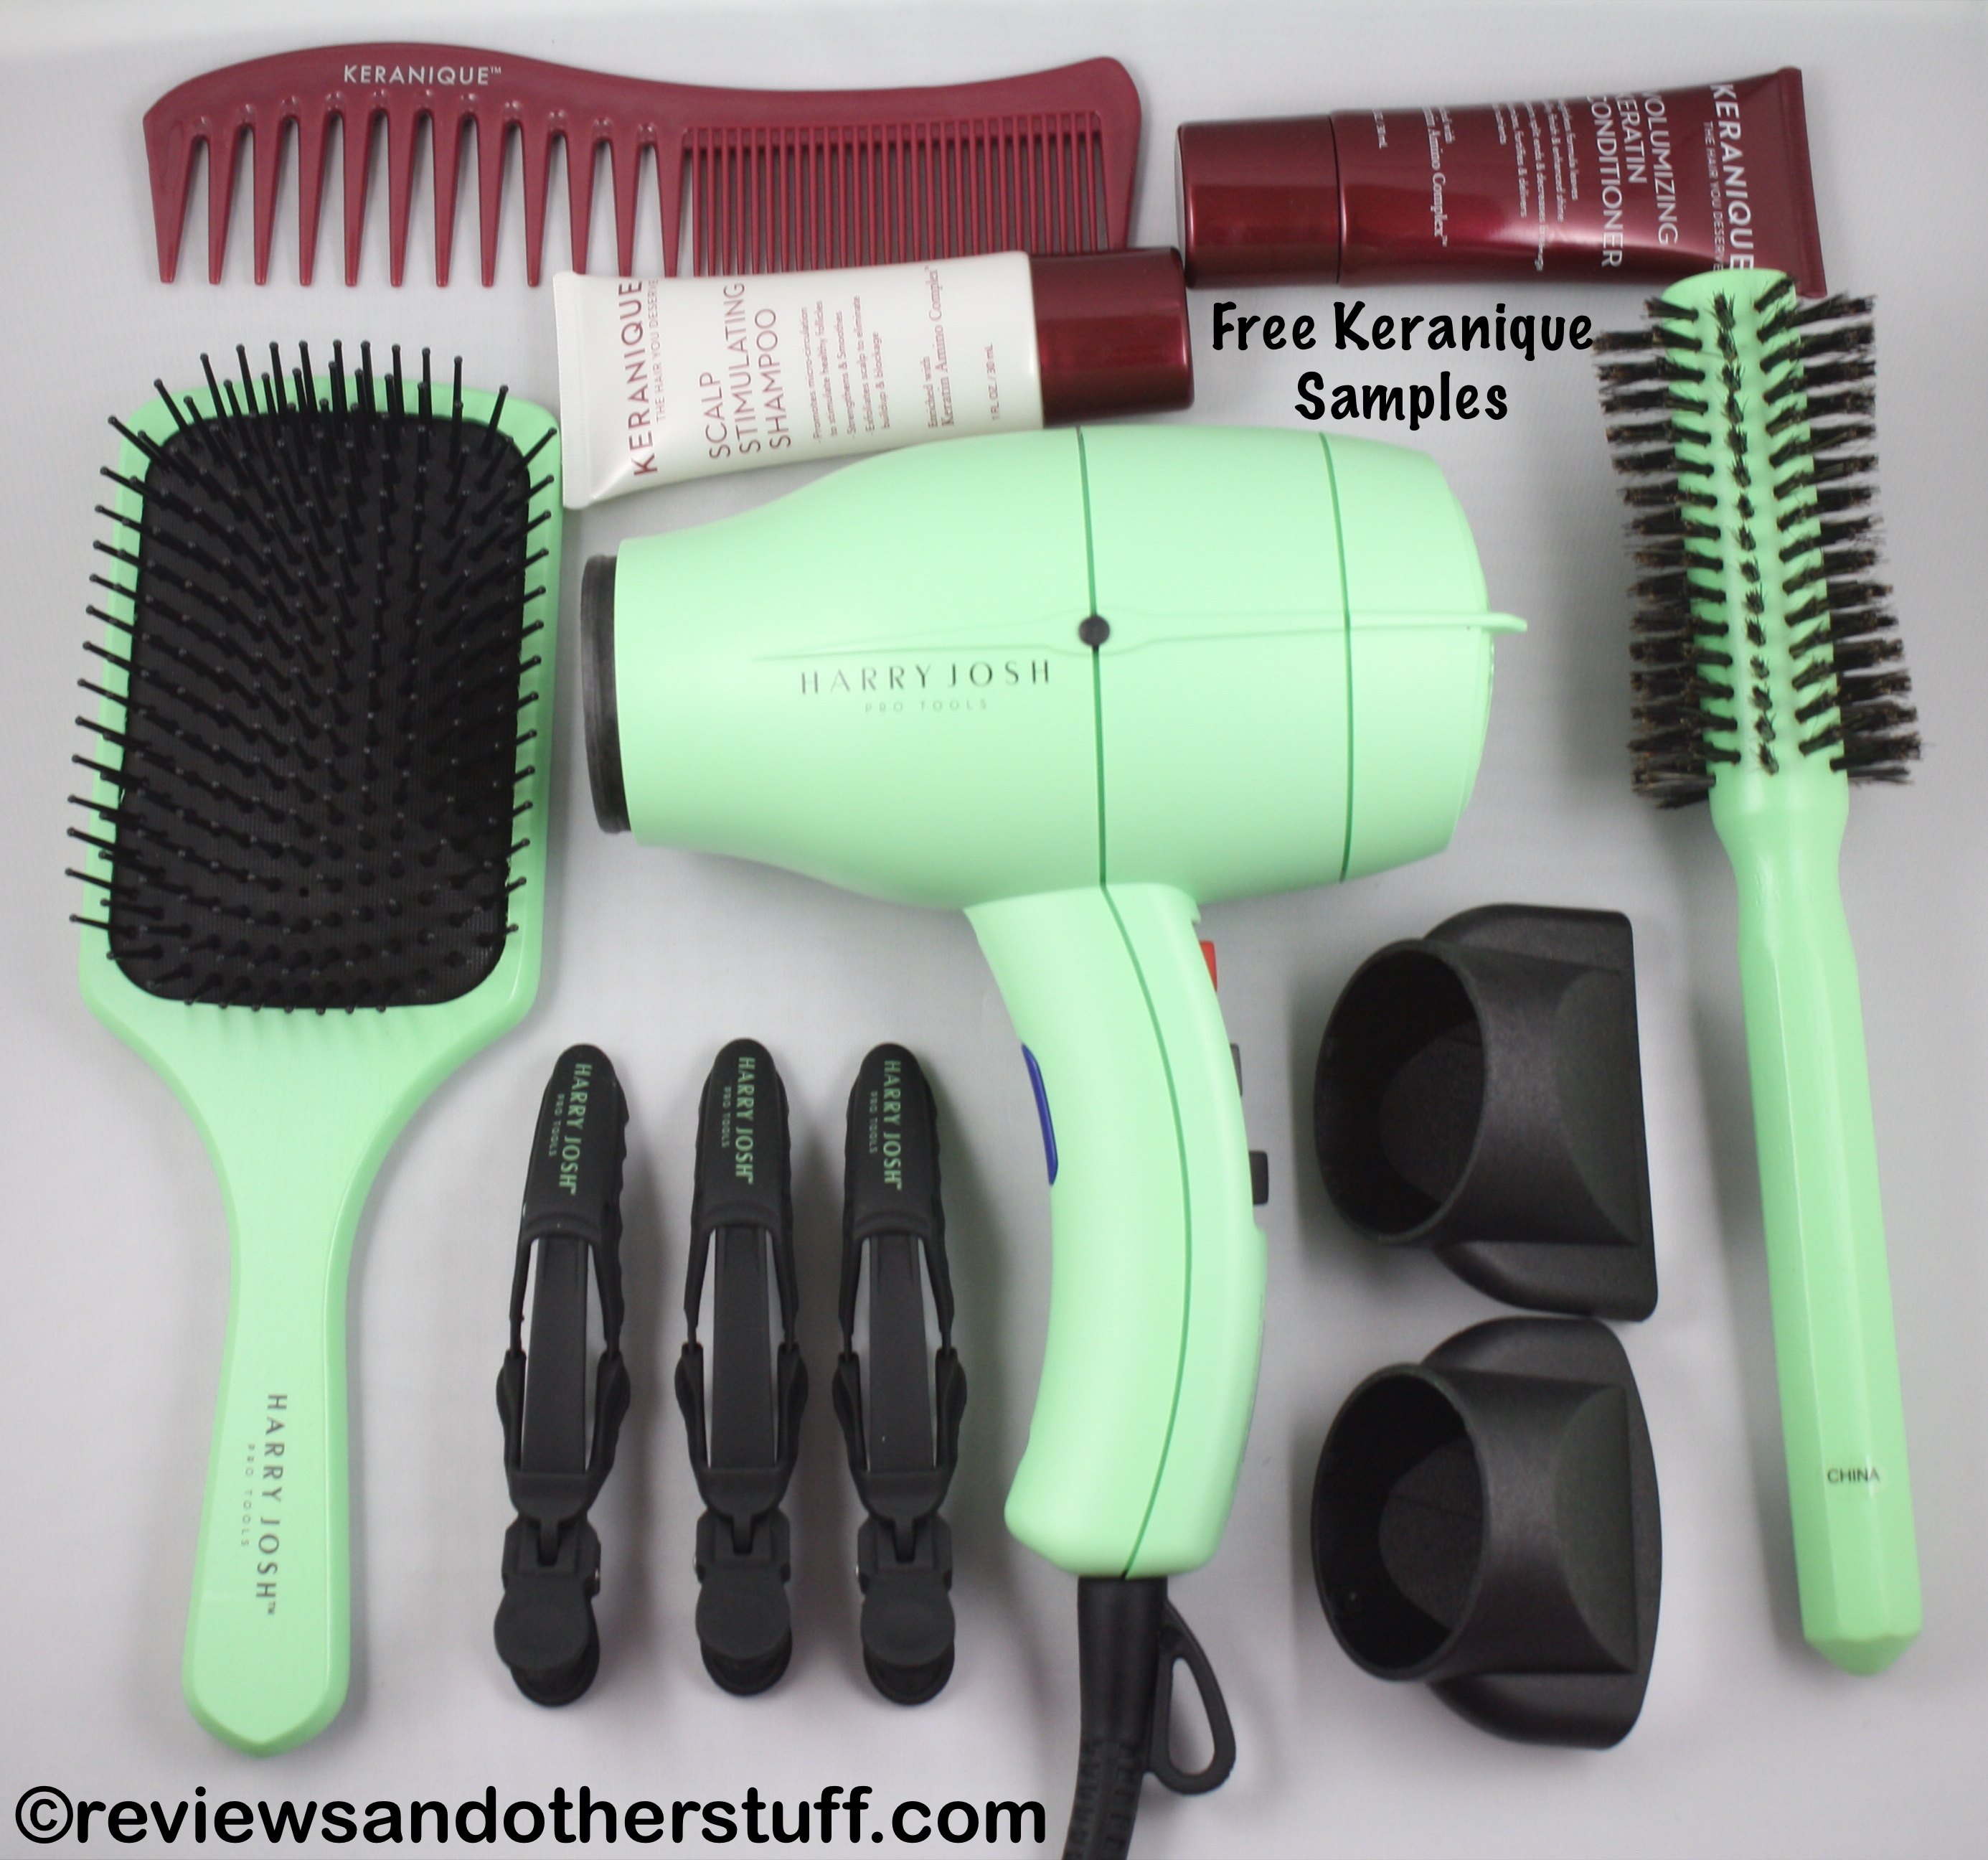 Harry Josh Pro Tools 2000 Pro Dryer An InDepth Review